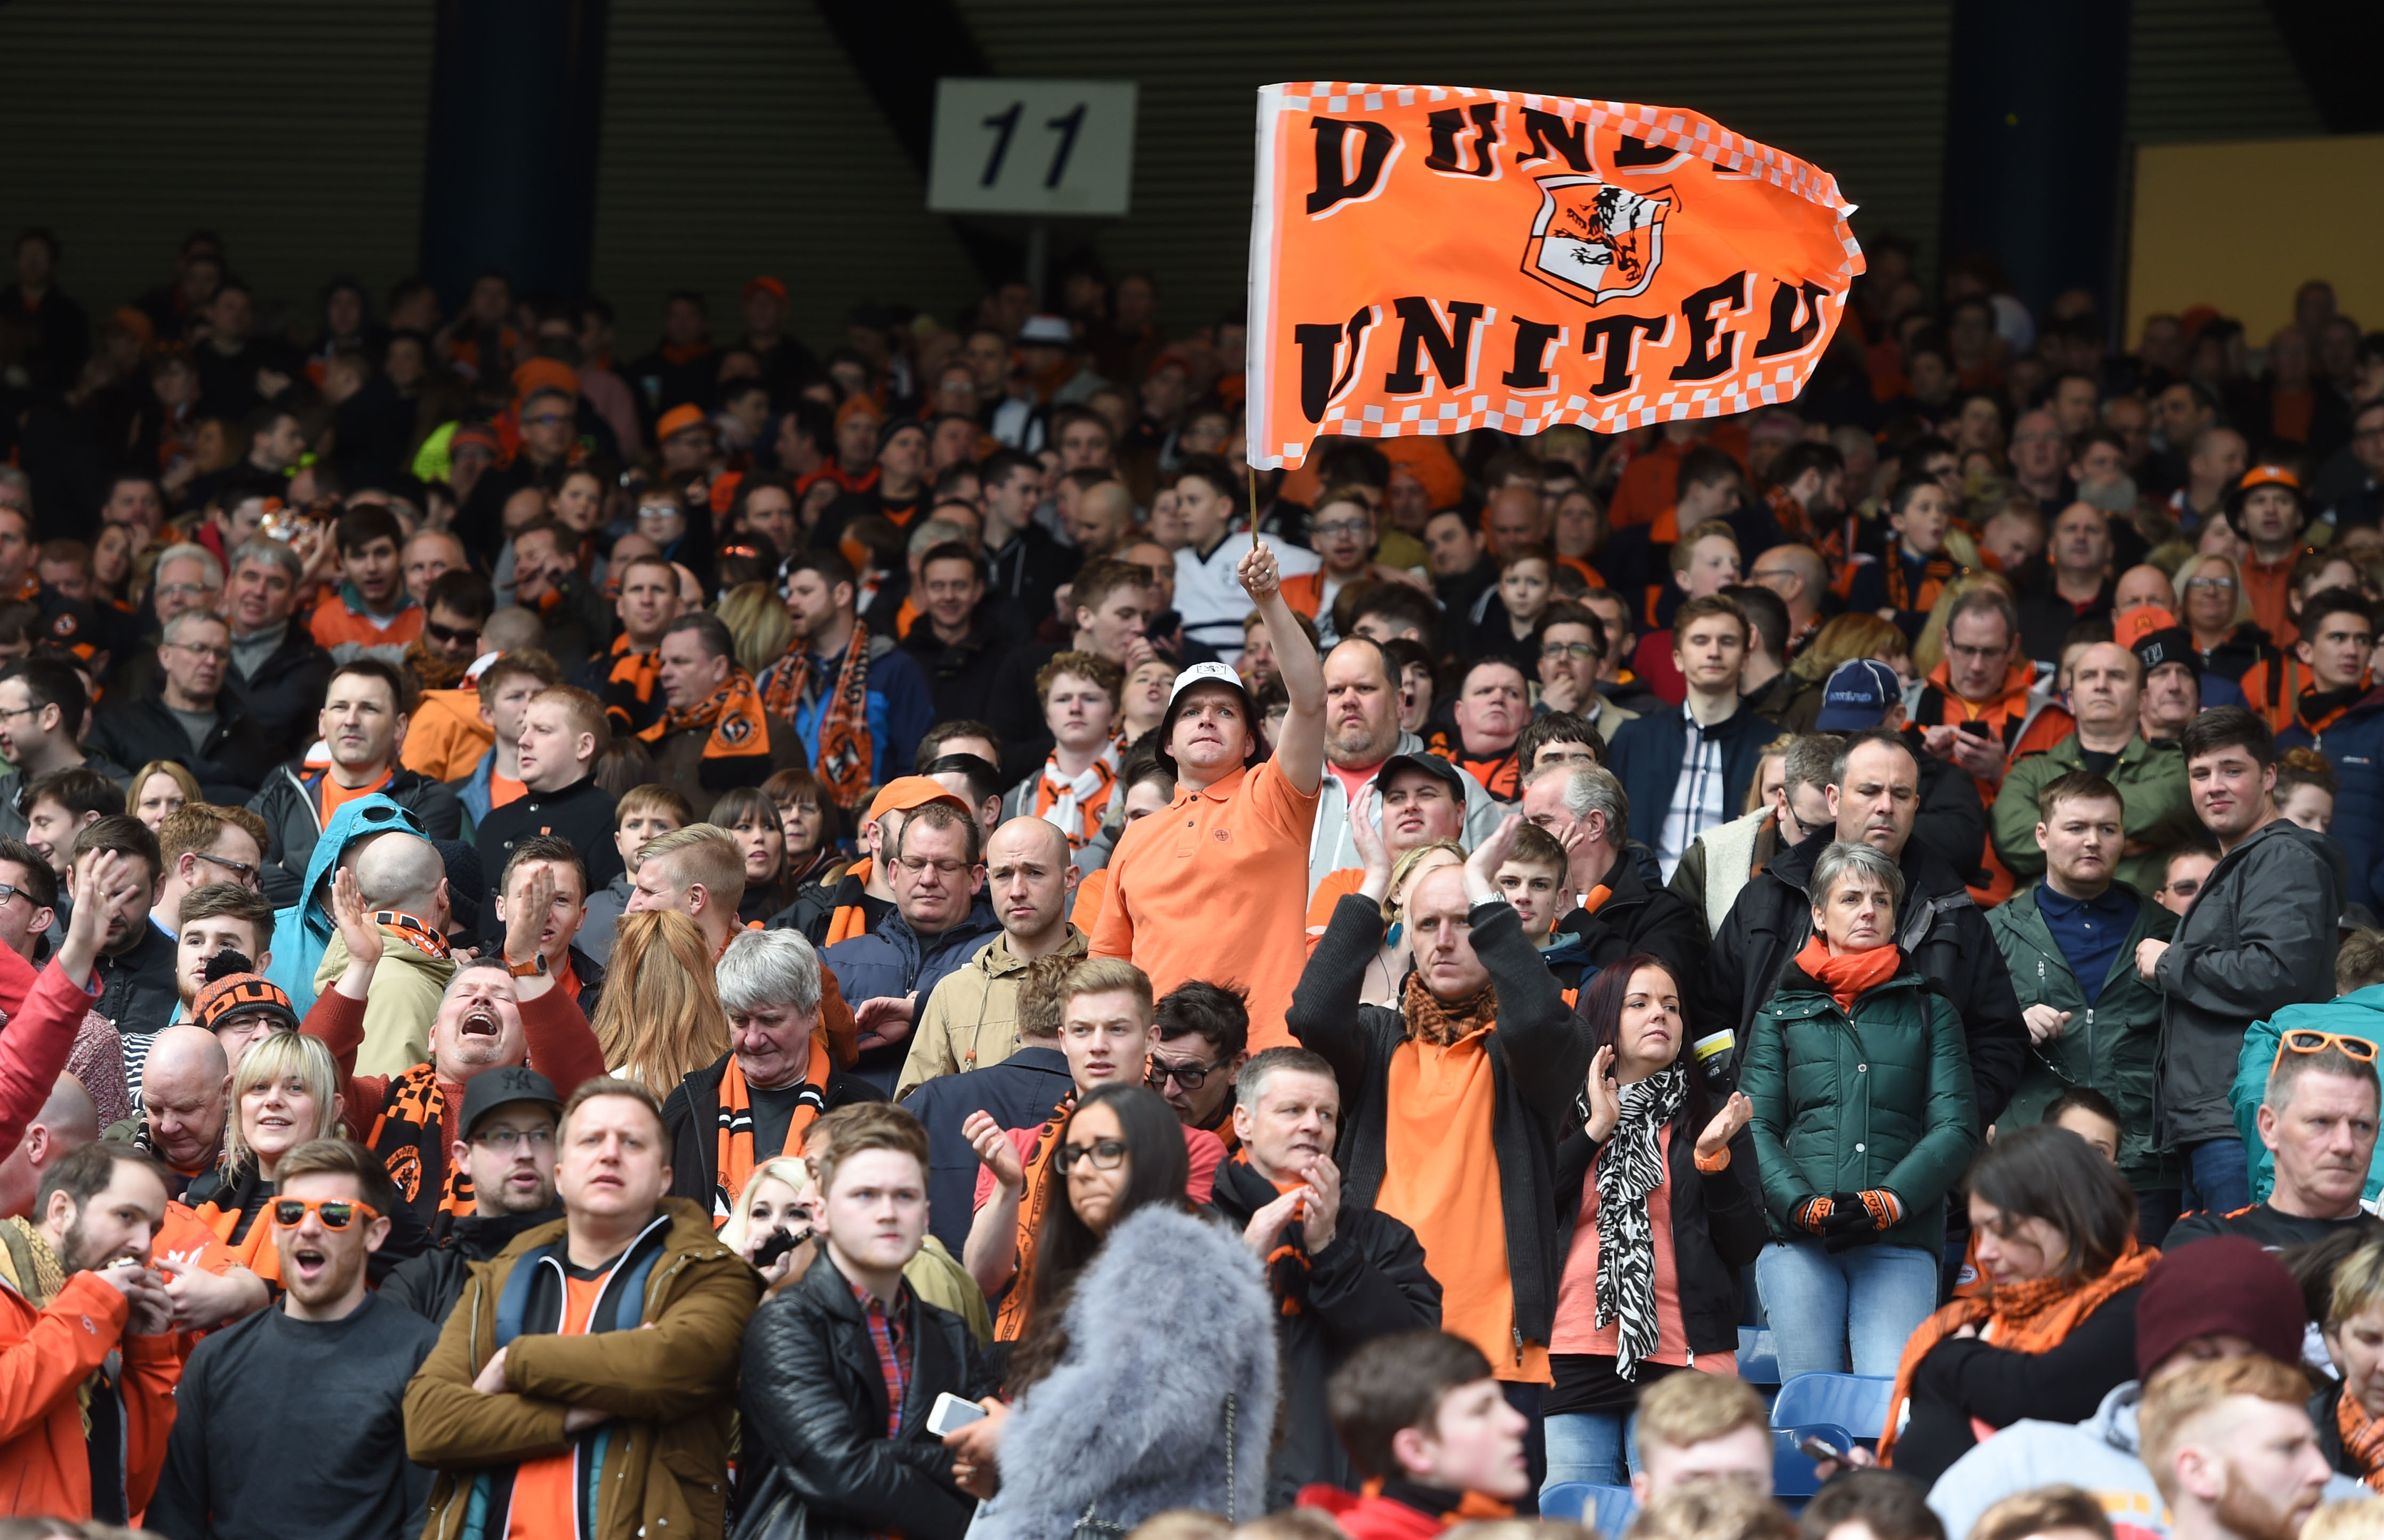 Dundee United fans are devastated after defeat at Dens saw their relegation fate sealed.